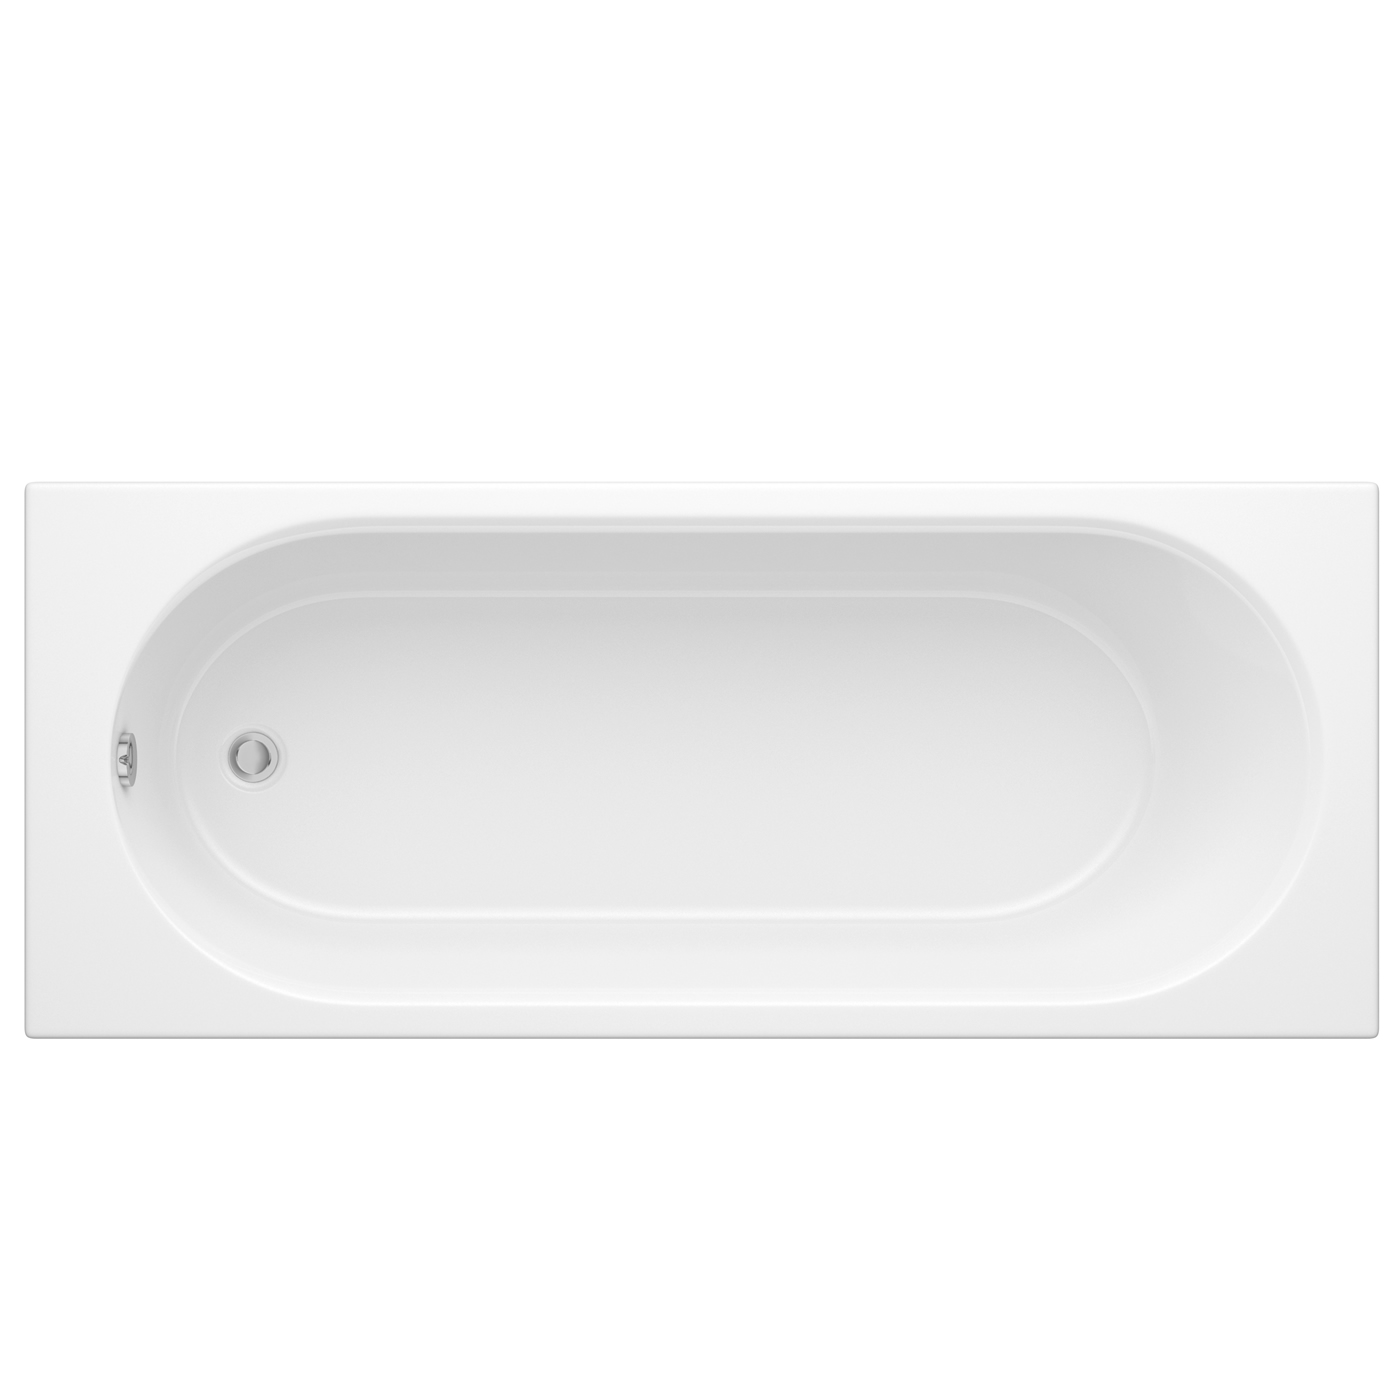 Milano 1700 x 700mm Round Single Ended Bath